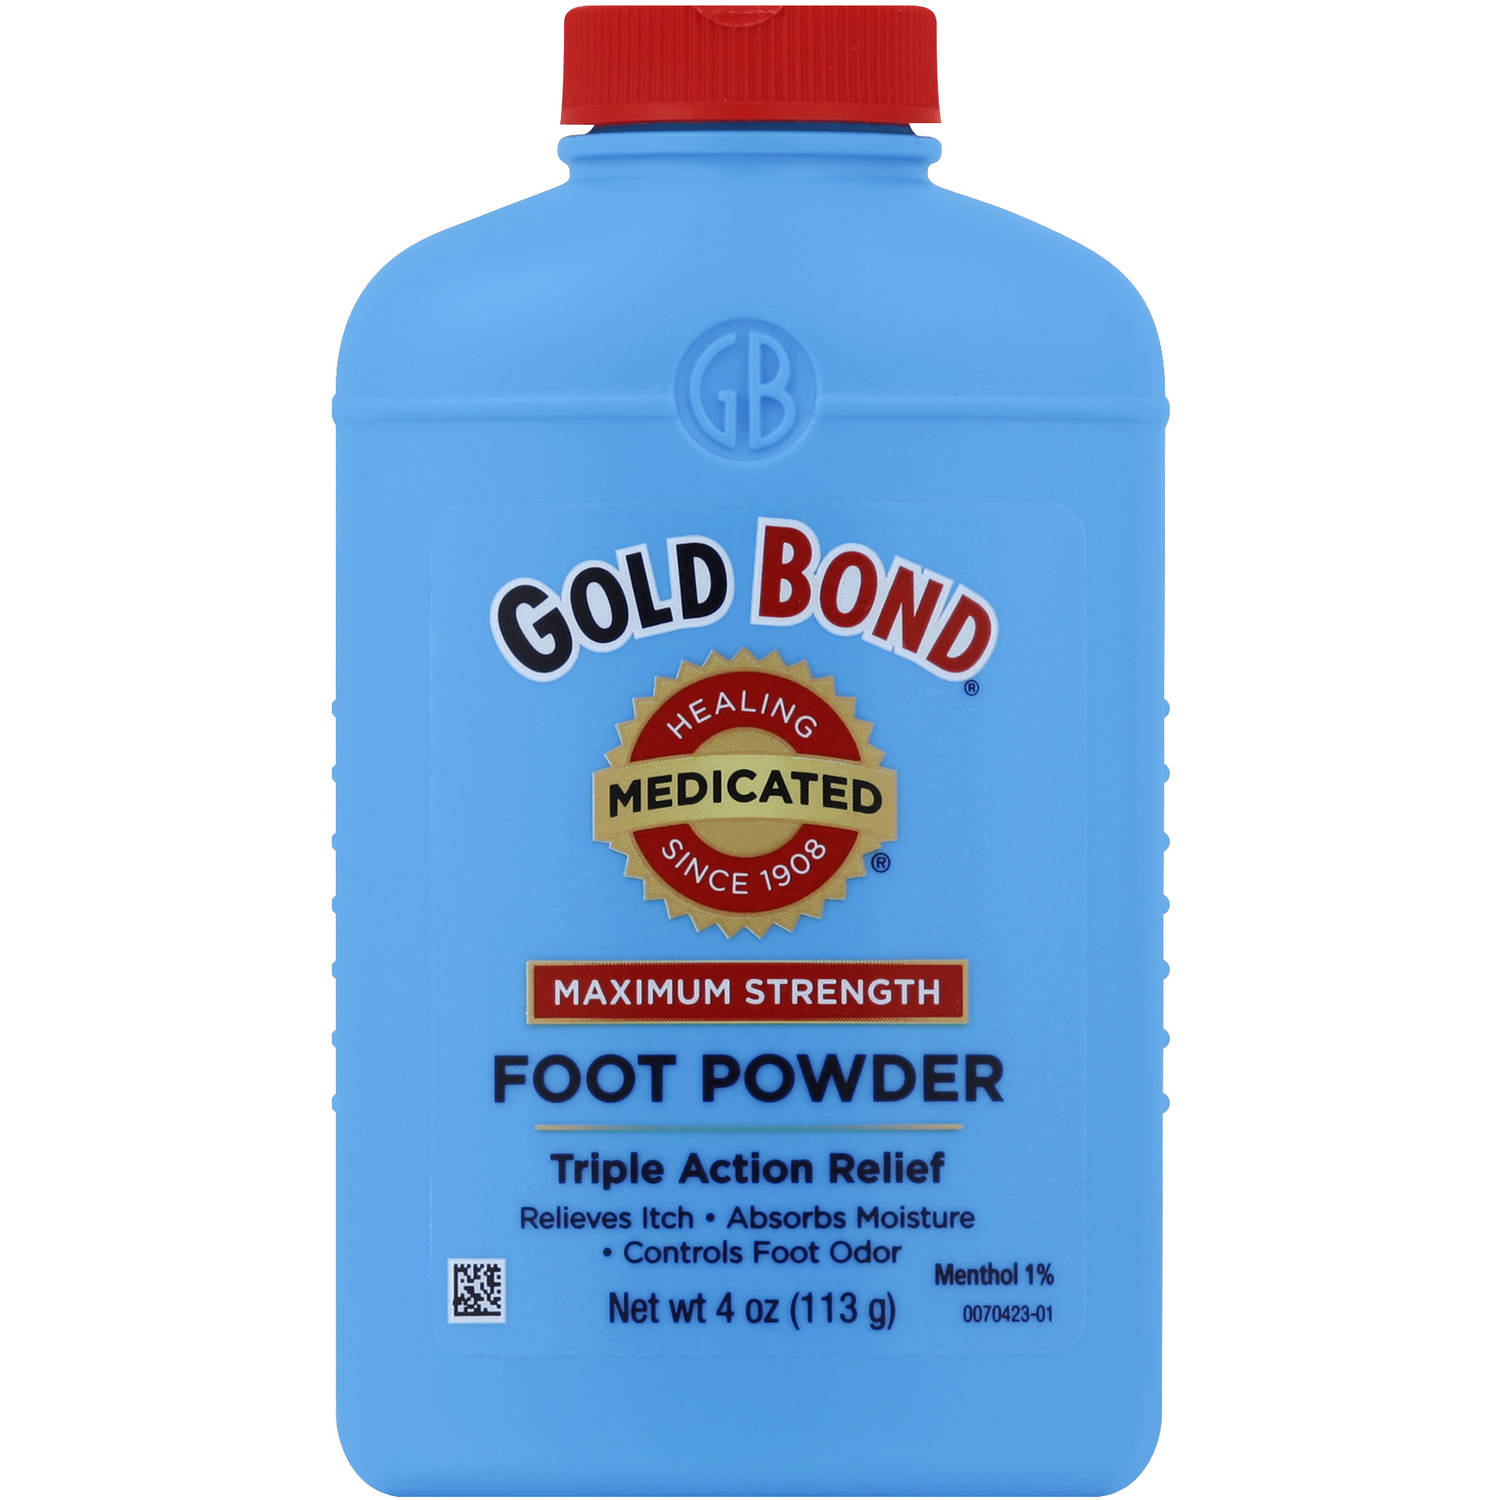 Gold Bond Maximum Strength Medicated Foot Powder, 4.0 oz